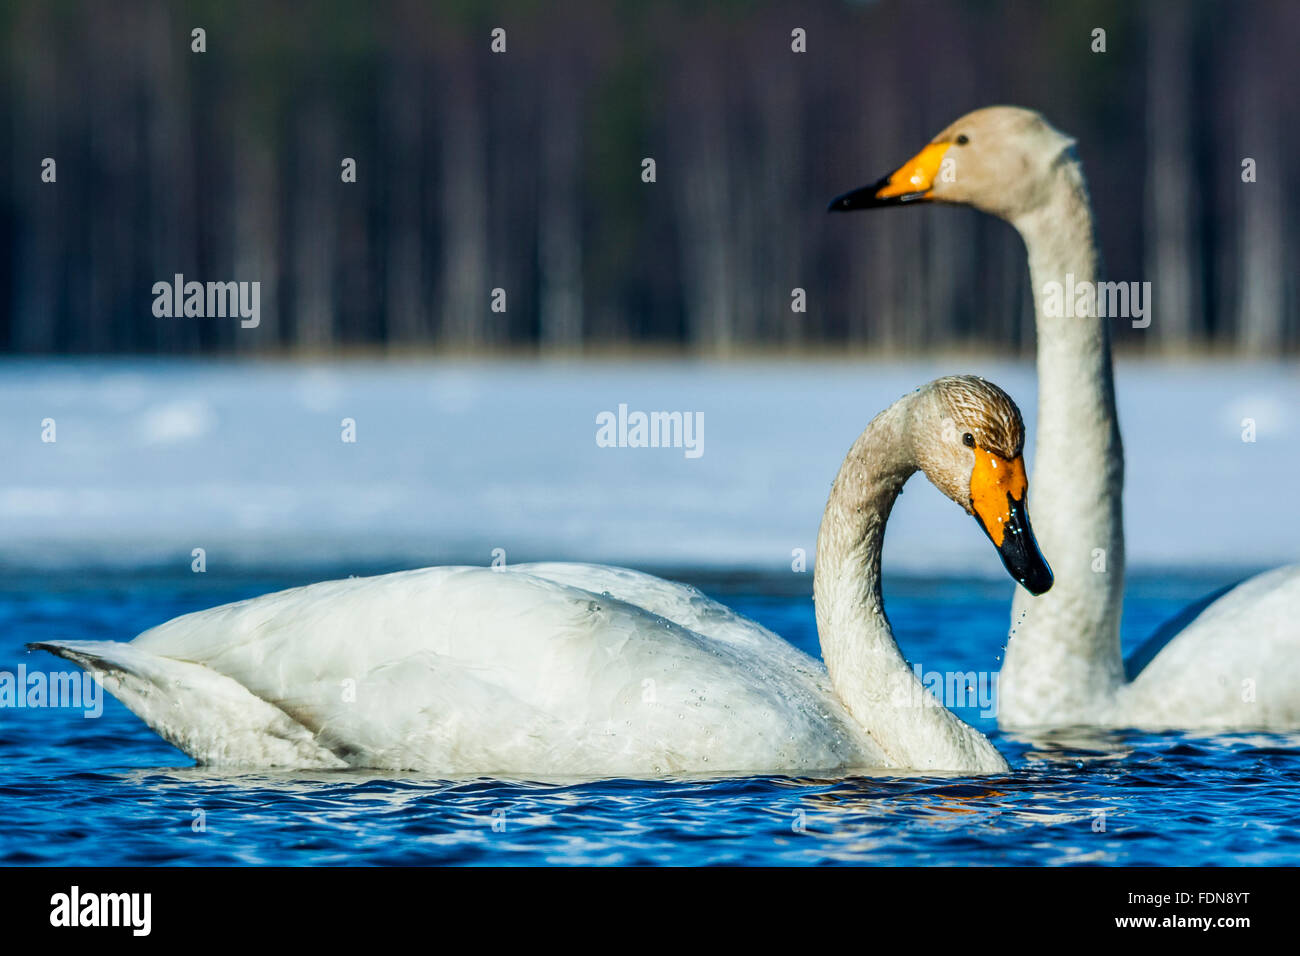 Two whooper swans - Stock Image